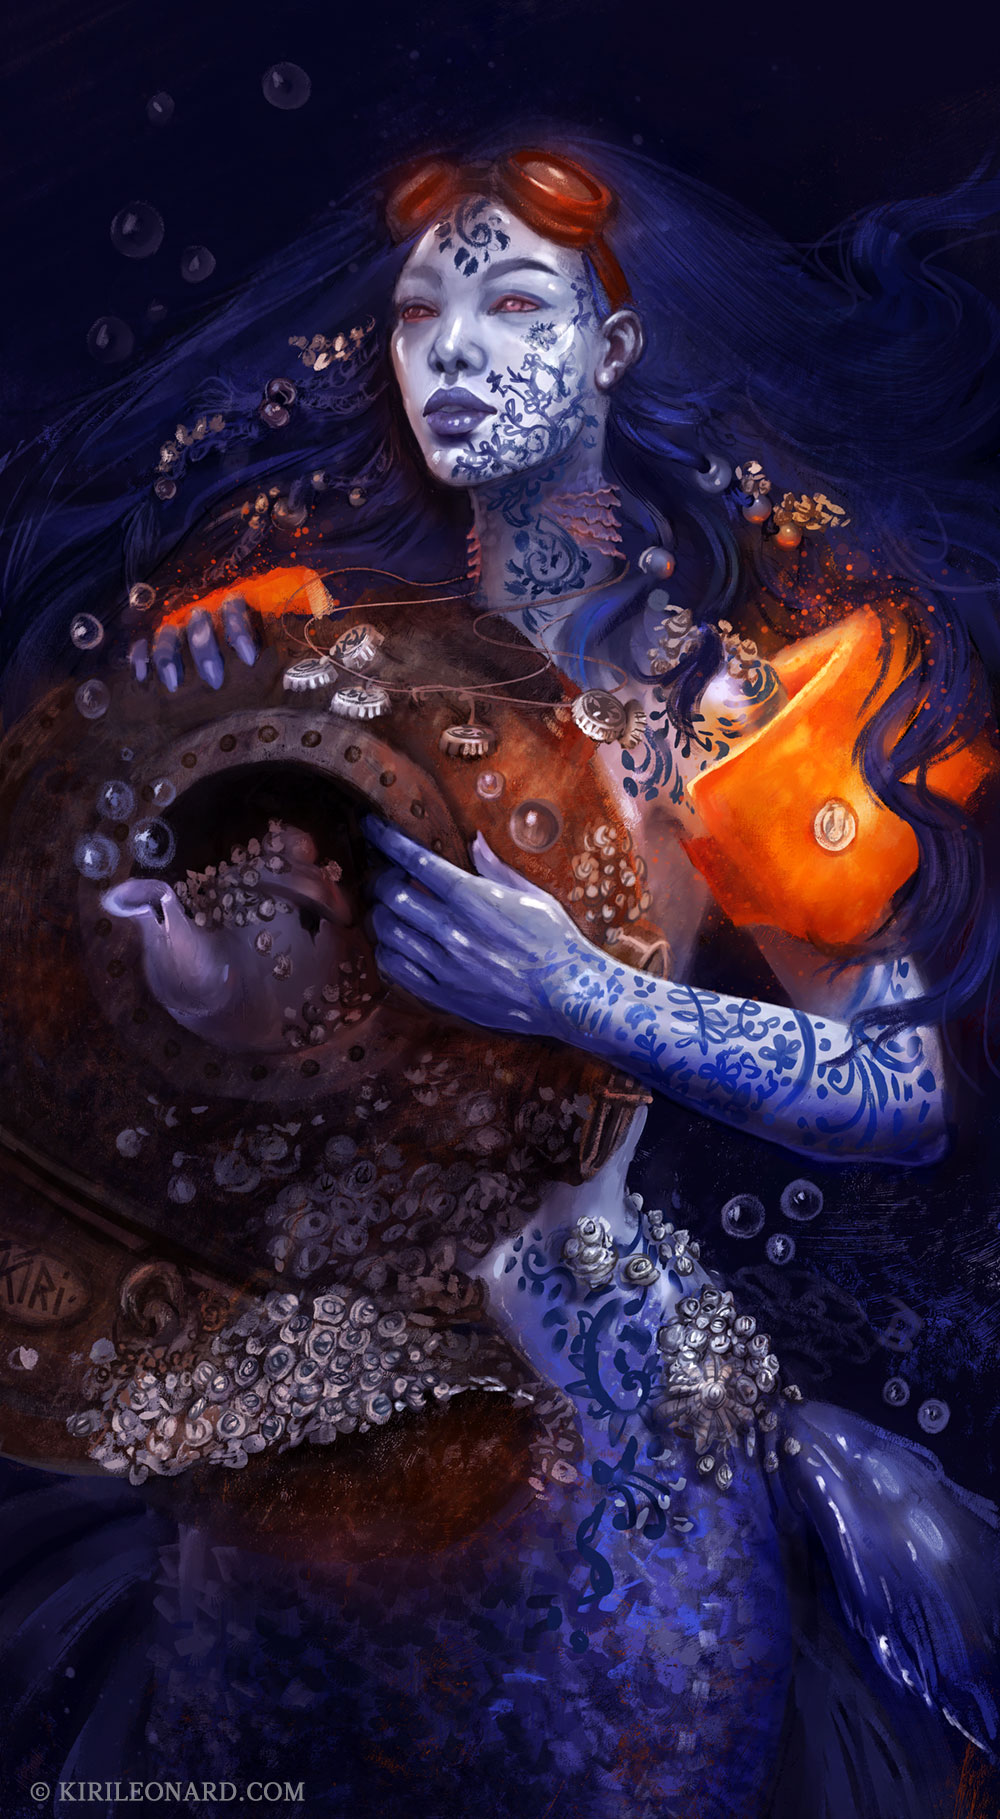 Illustration of a porcelain mermaid with orange floaties by Danish artist Kiri Leonard